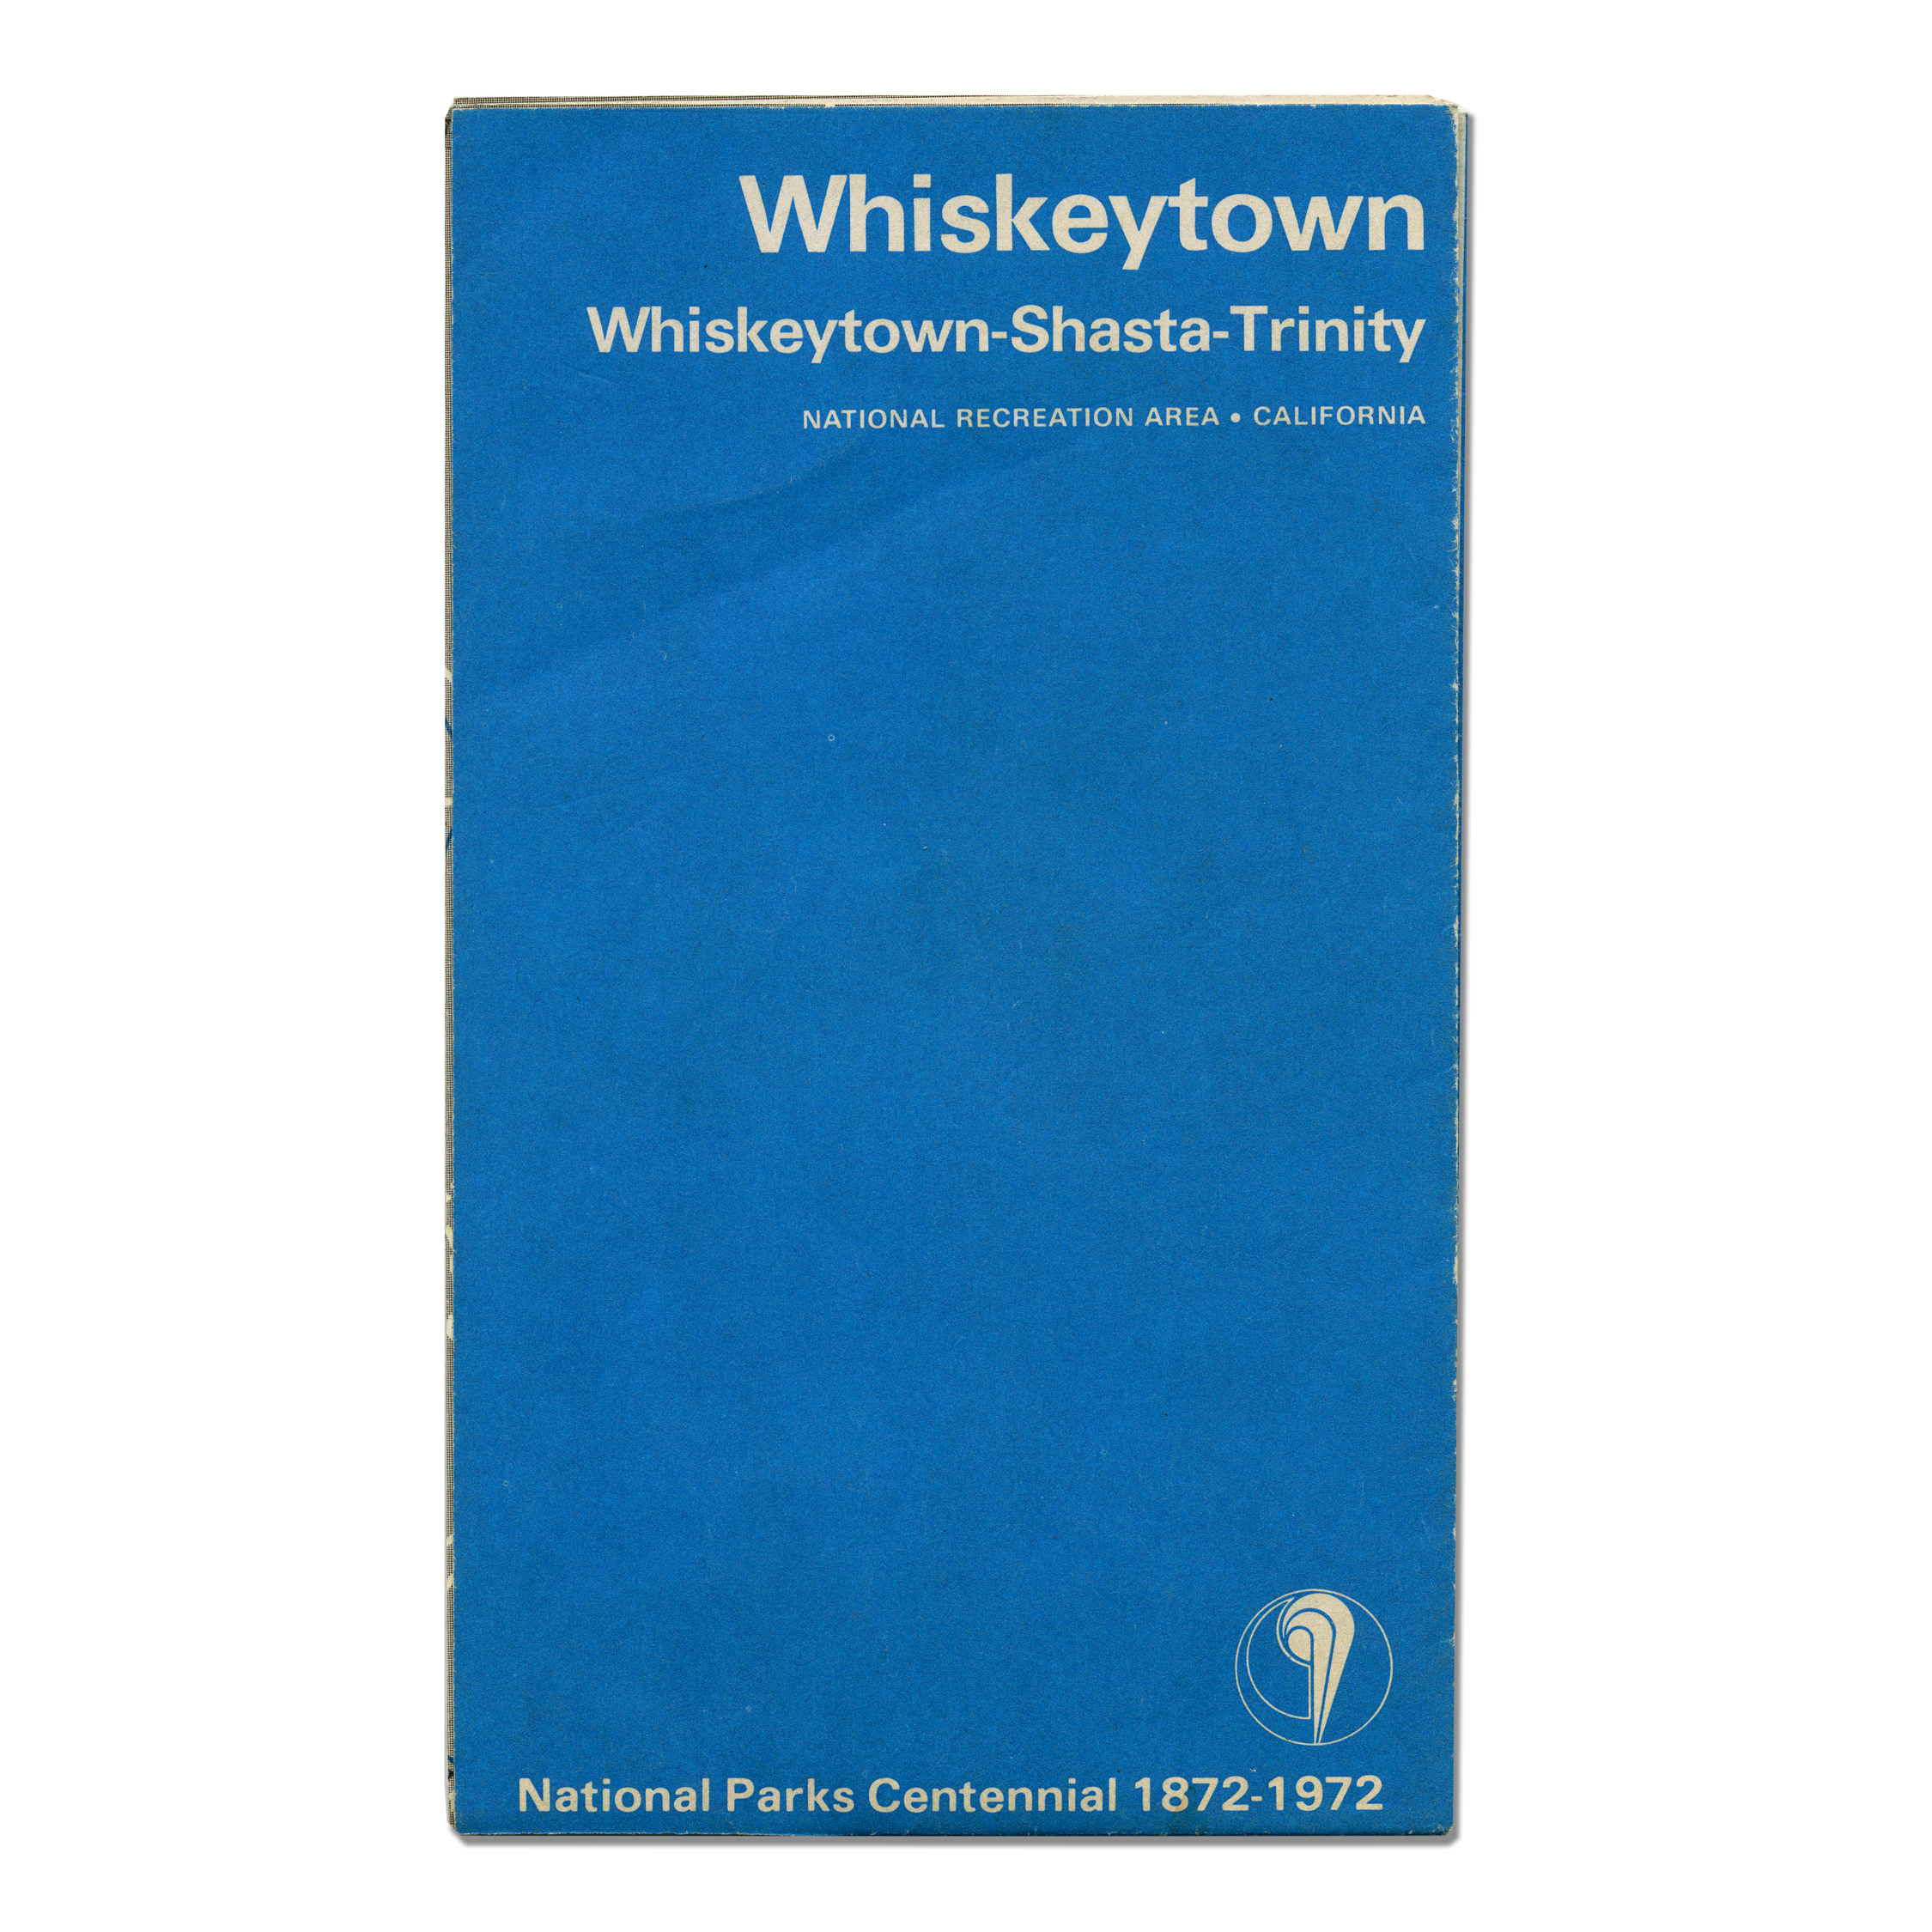 1972_whiskeytown_national_recreation_area_brochure.jpg